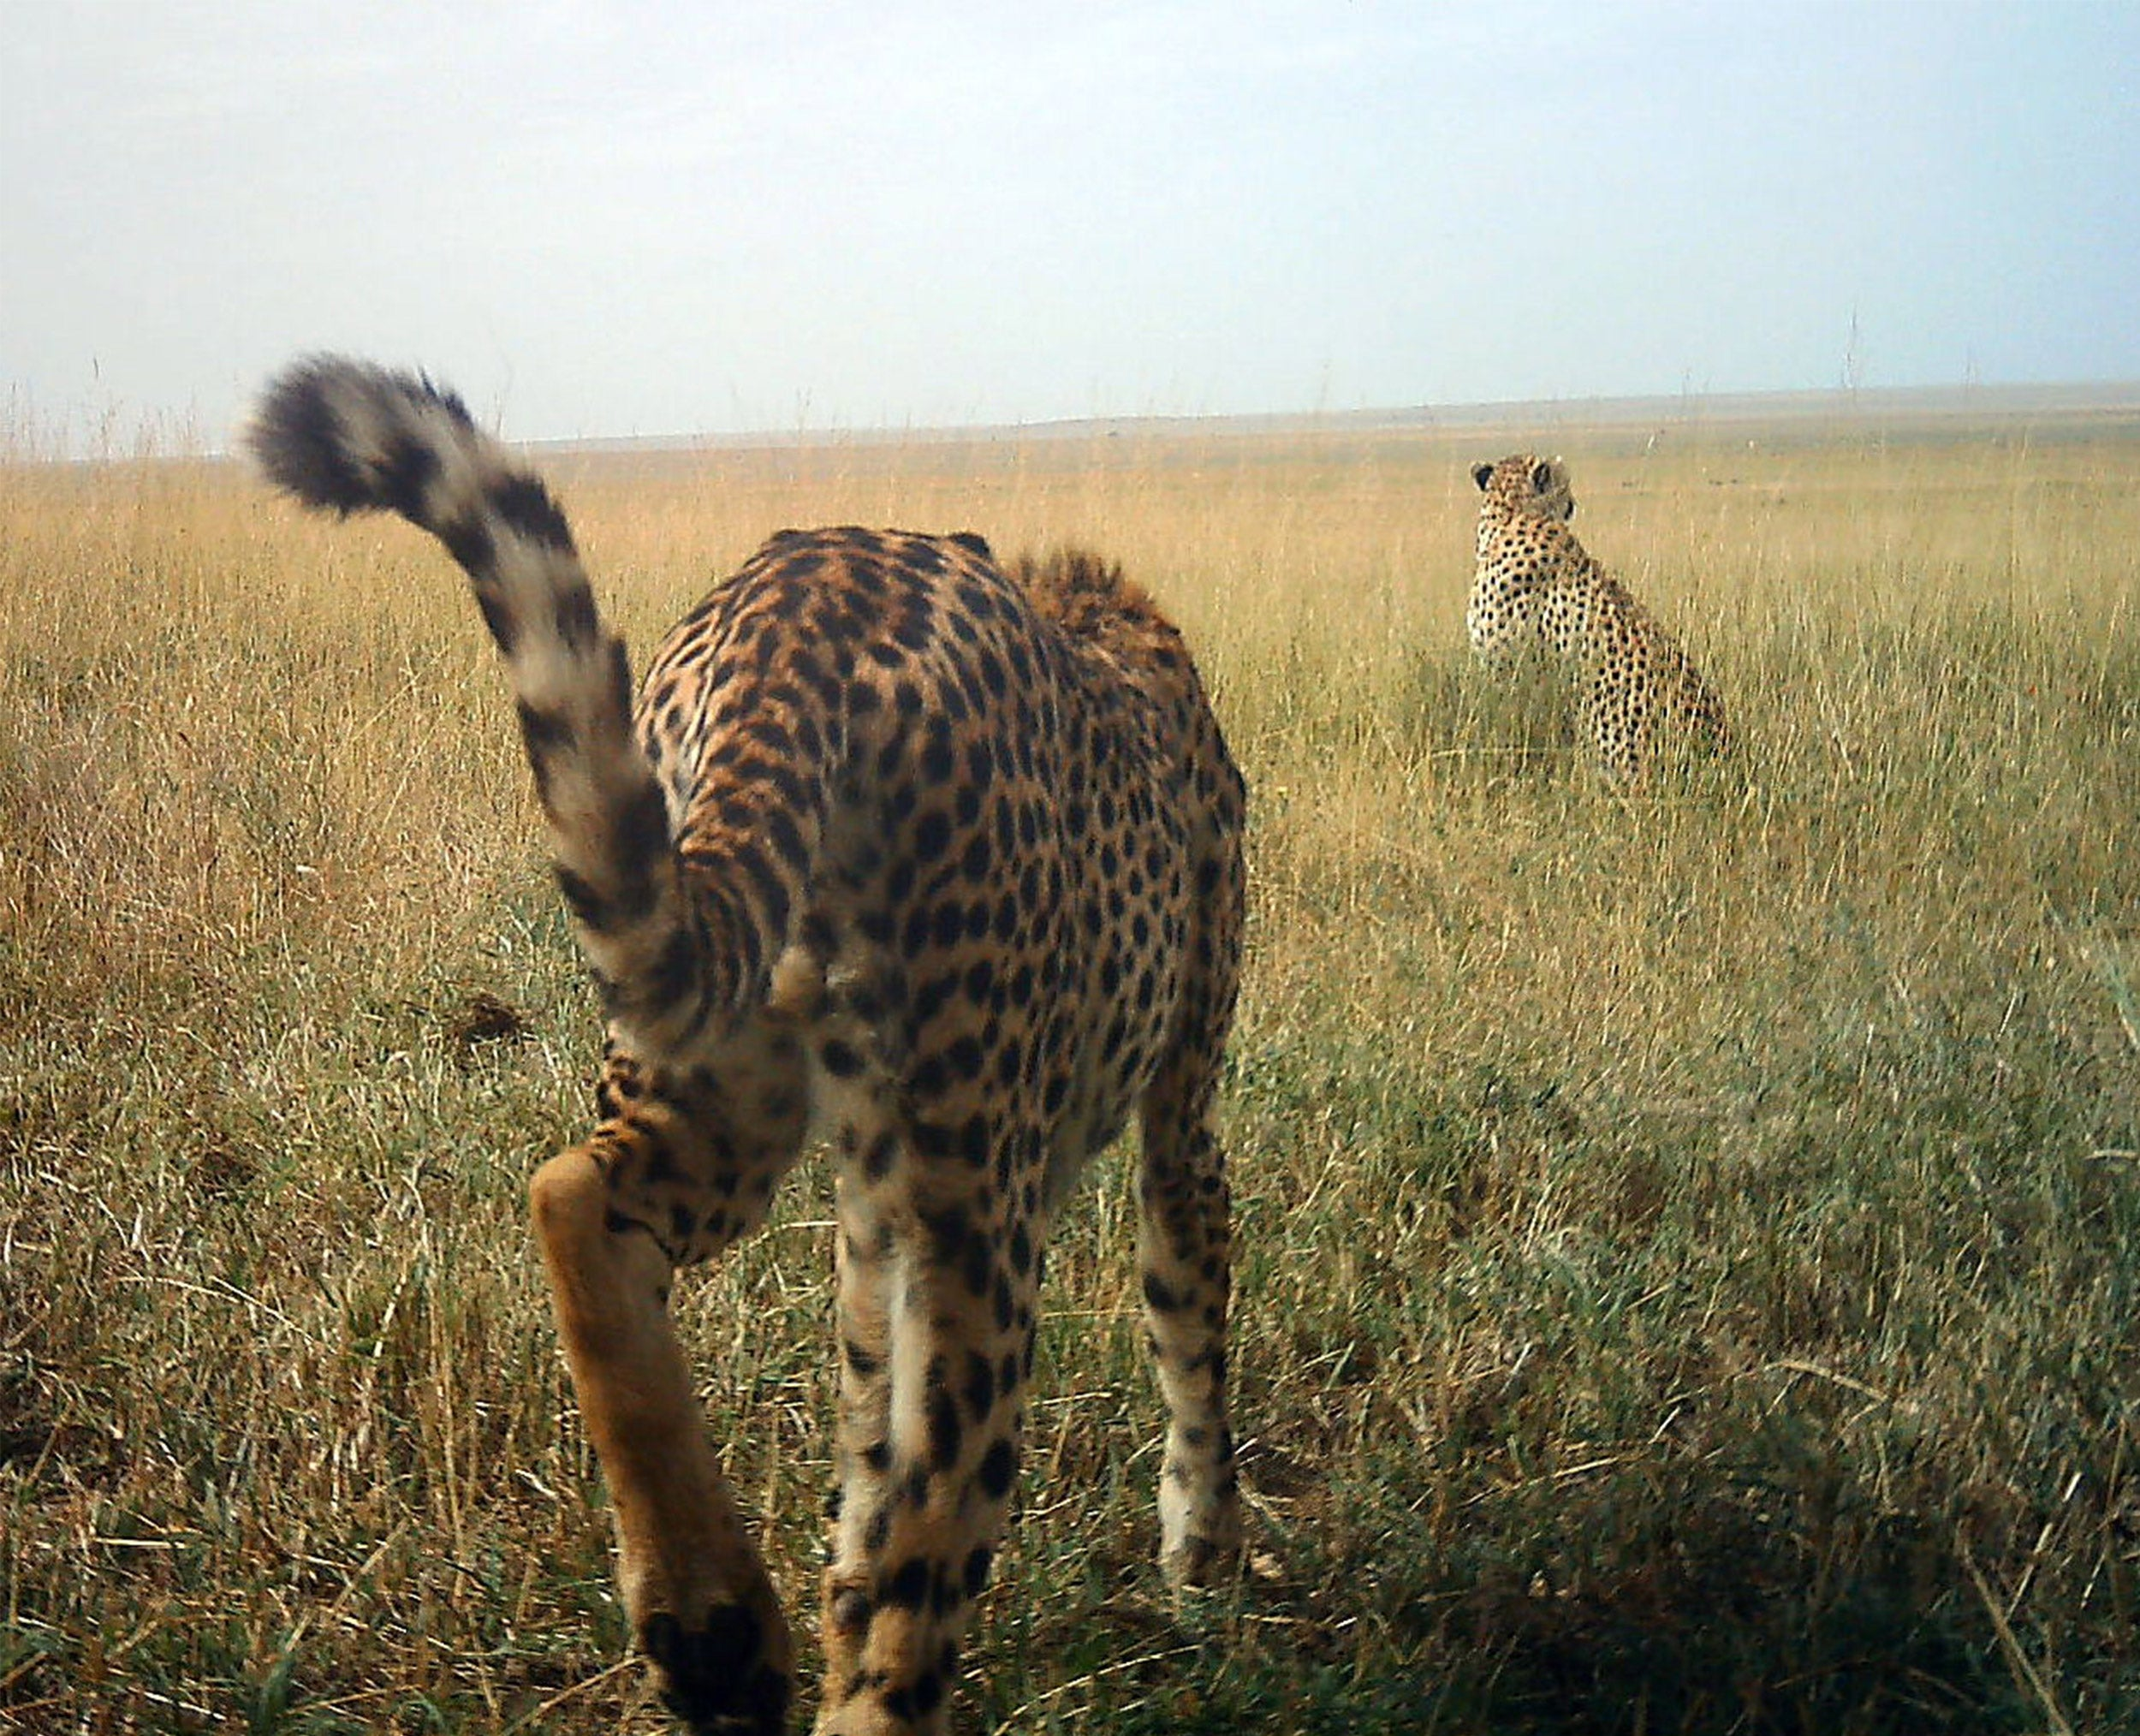 Two cheetahs in the wild.